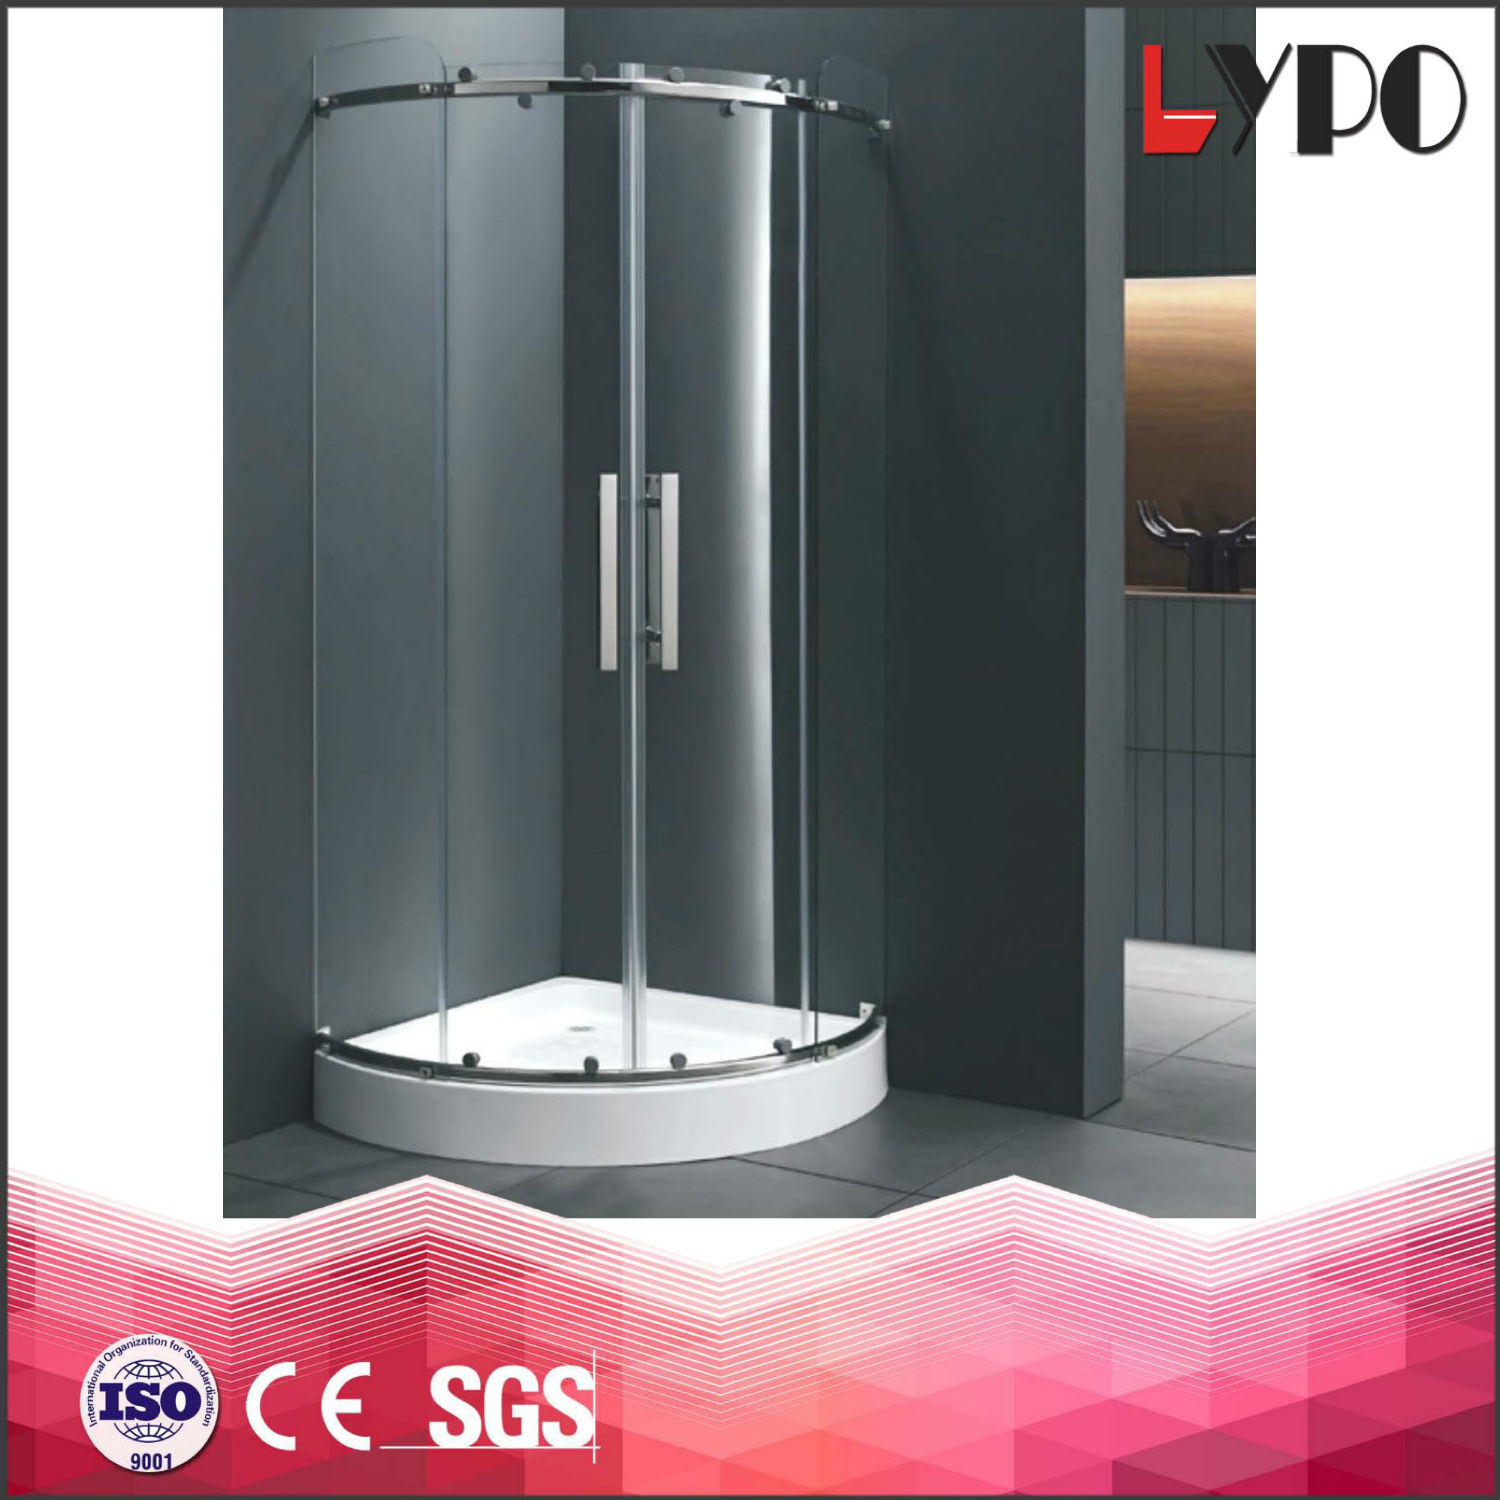 K 7206 China Suppliers Stainless Steel 304 Shower Room Square Size